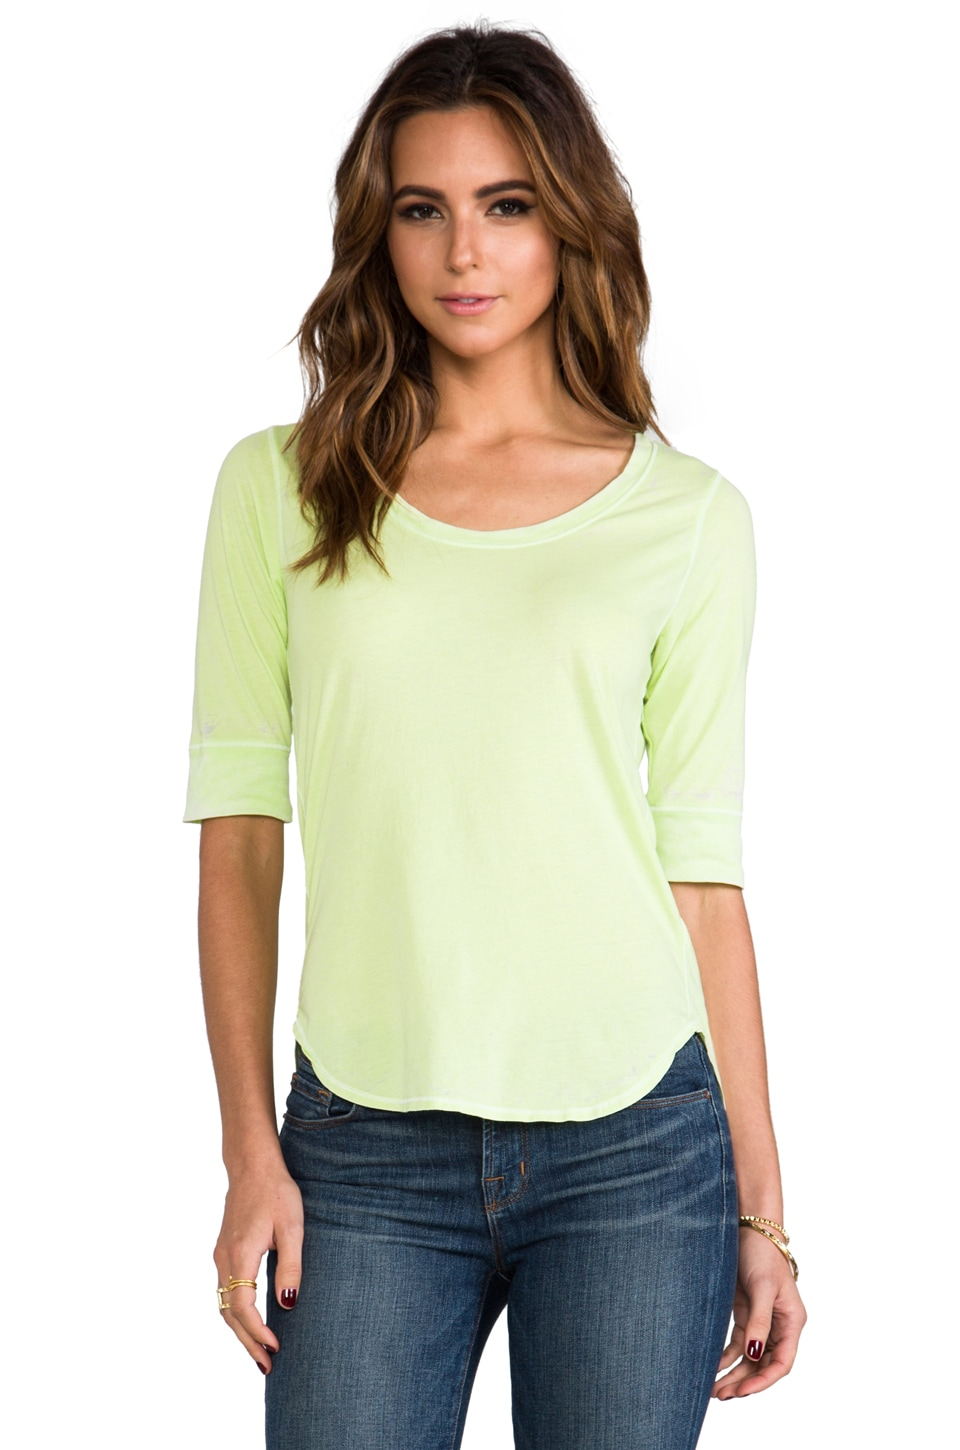 Chaser Elbow Sleeve Shirt Tail Tee in Lime